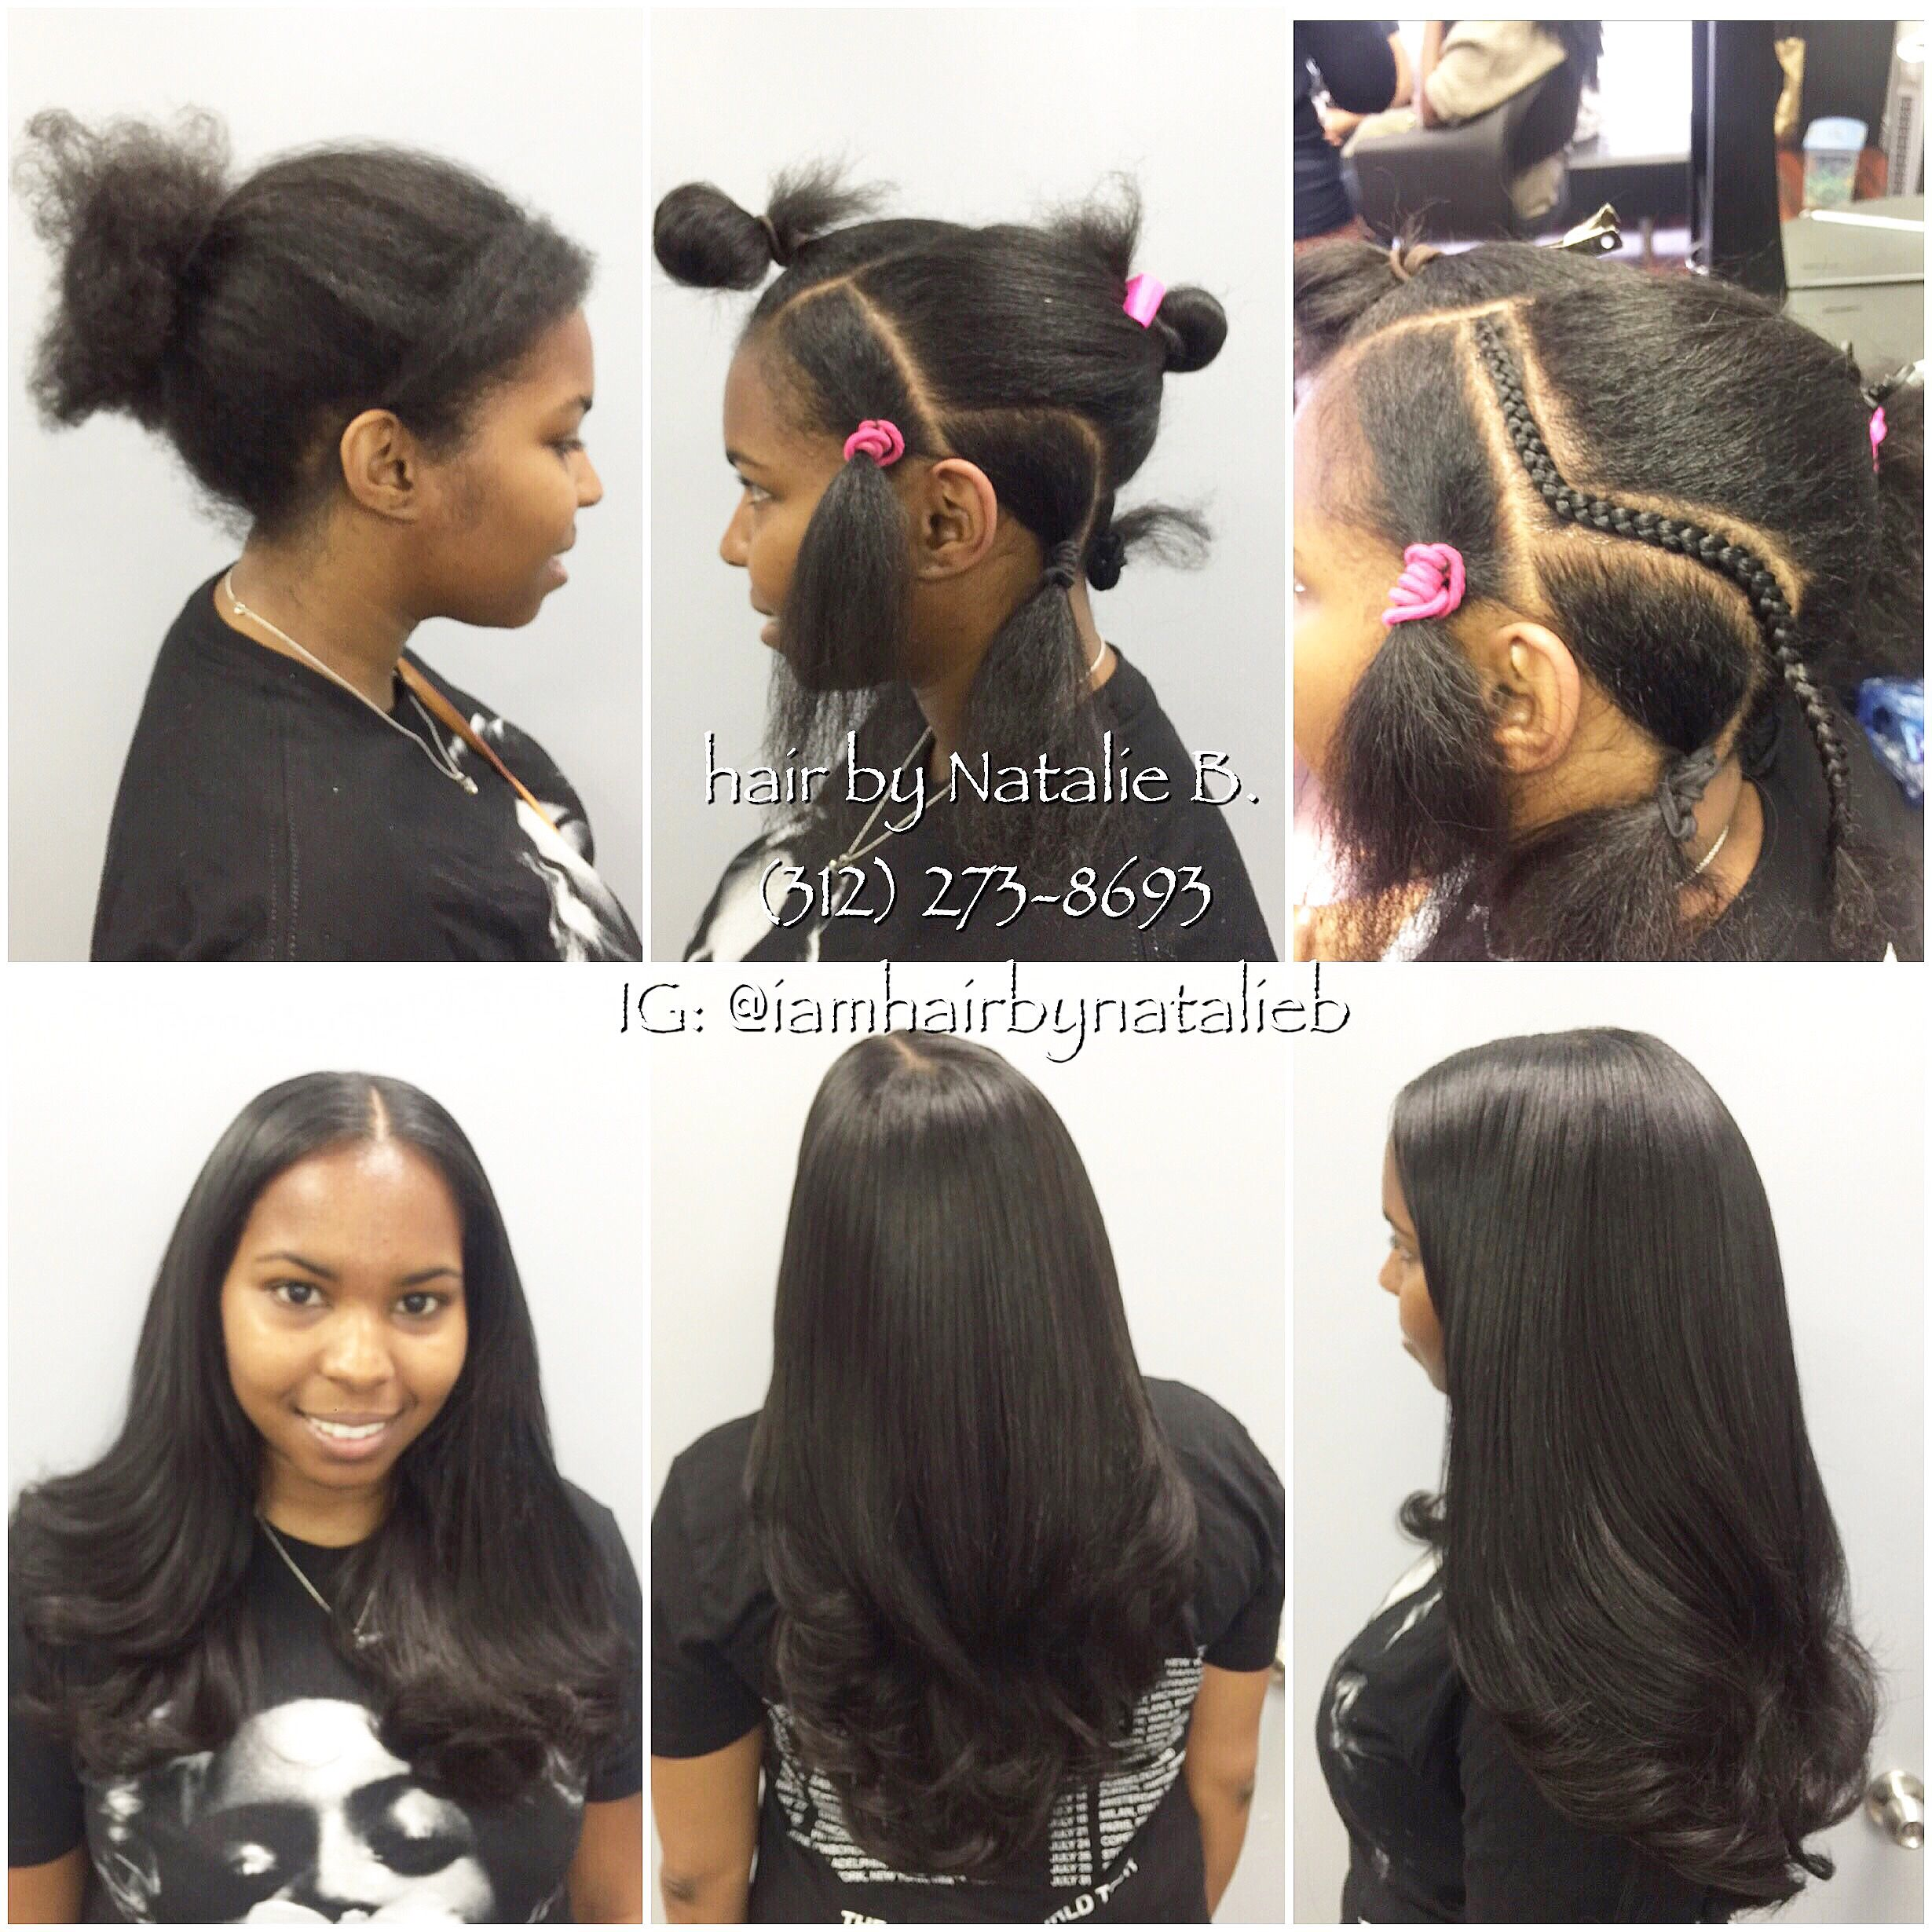 Now THIS is a sew in PERFECT PONY SEW IN HAIR WEAVE by Natalie B